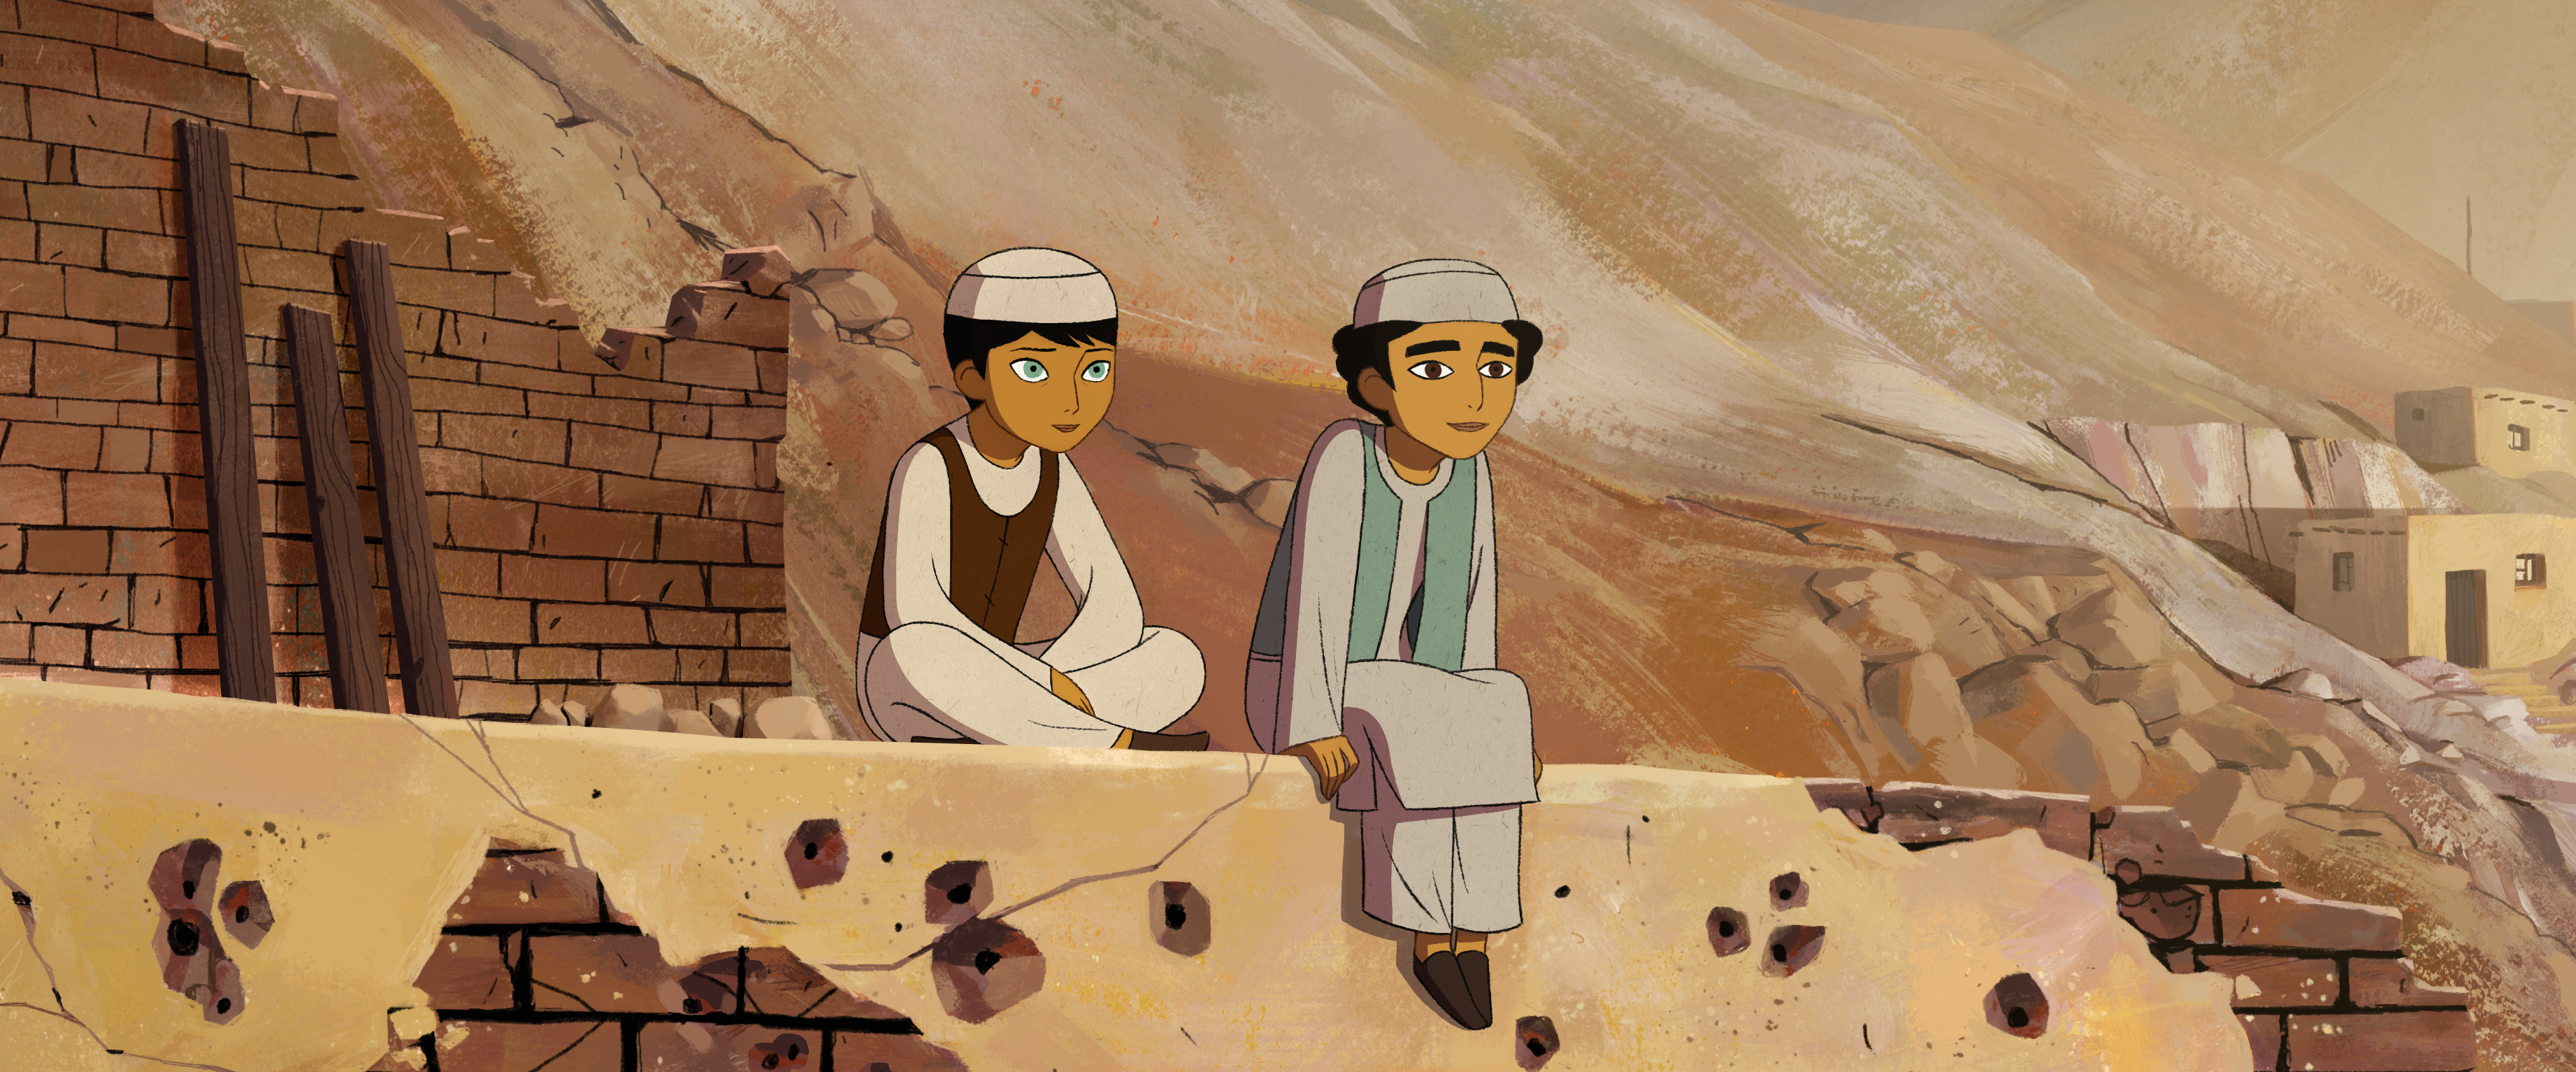 The breadwinner animated feature film